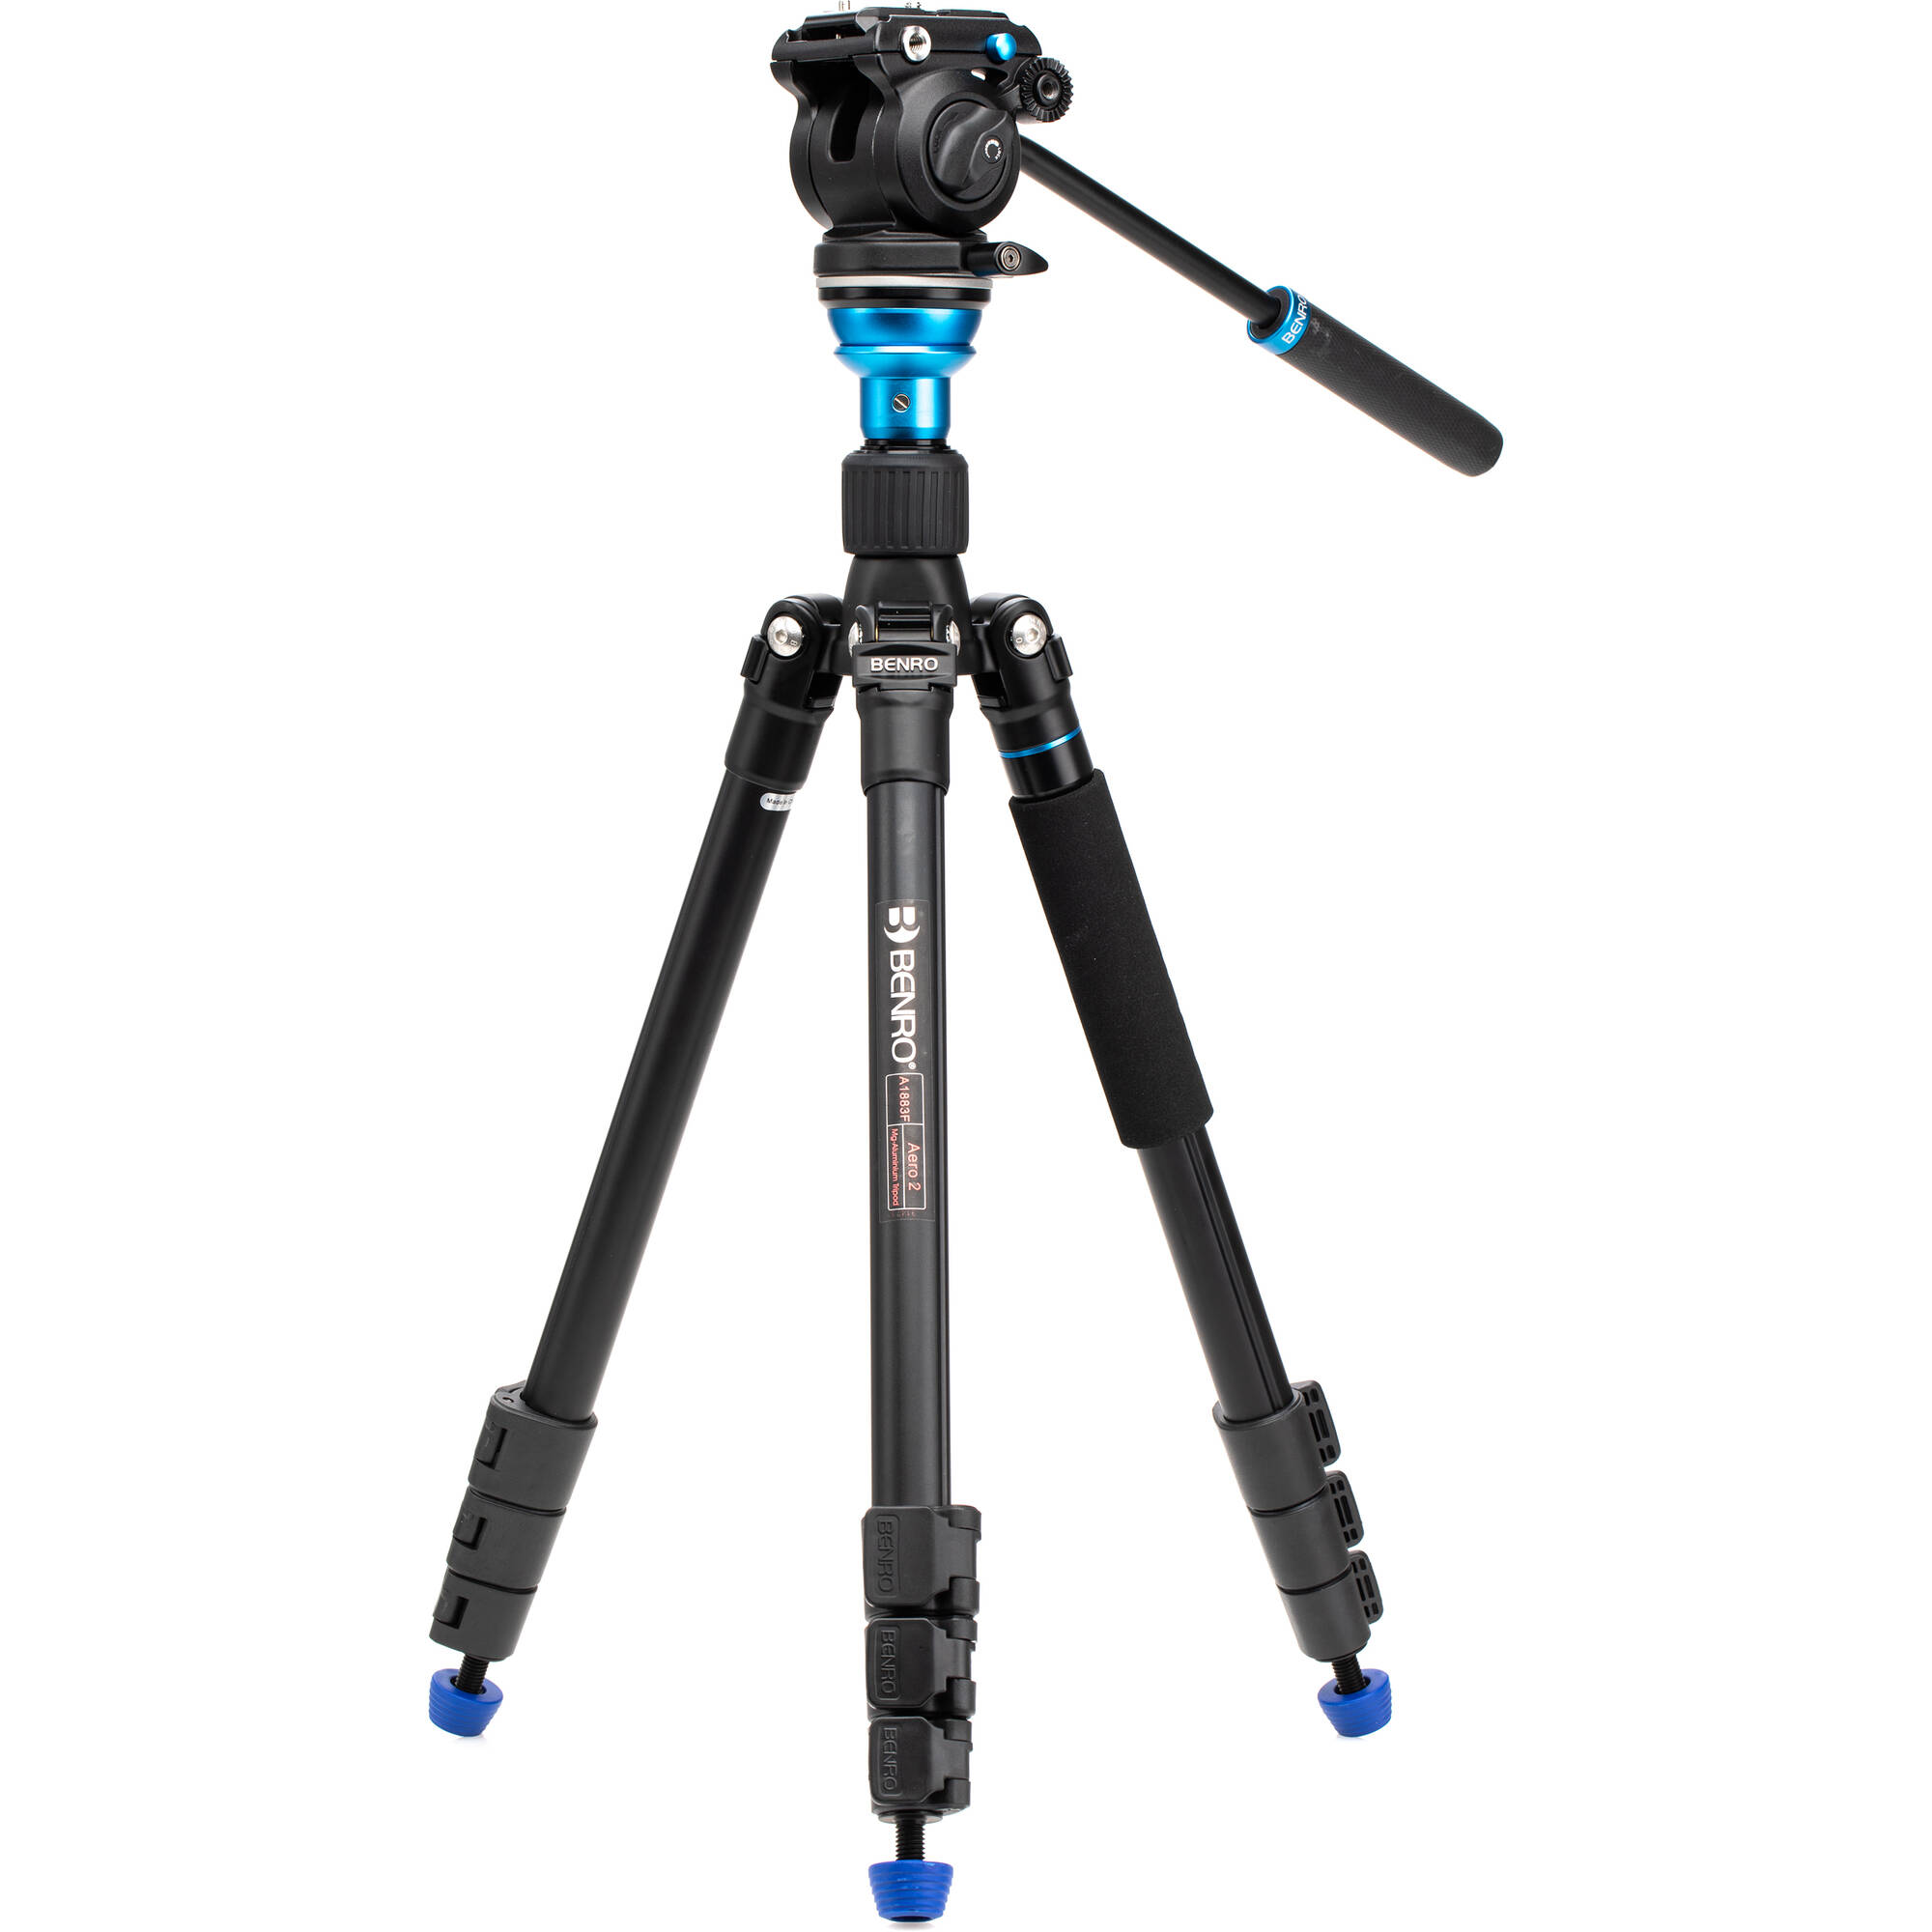 Benro Aero 2 Pro Aluminum Travel Video Tripod